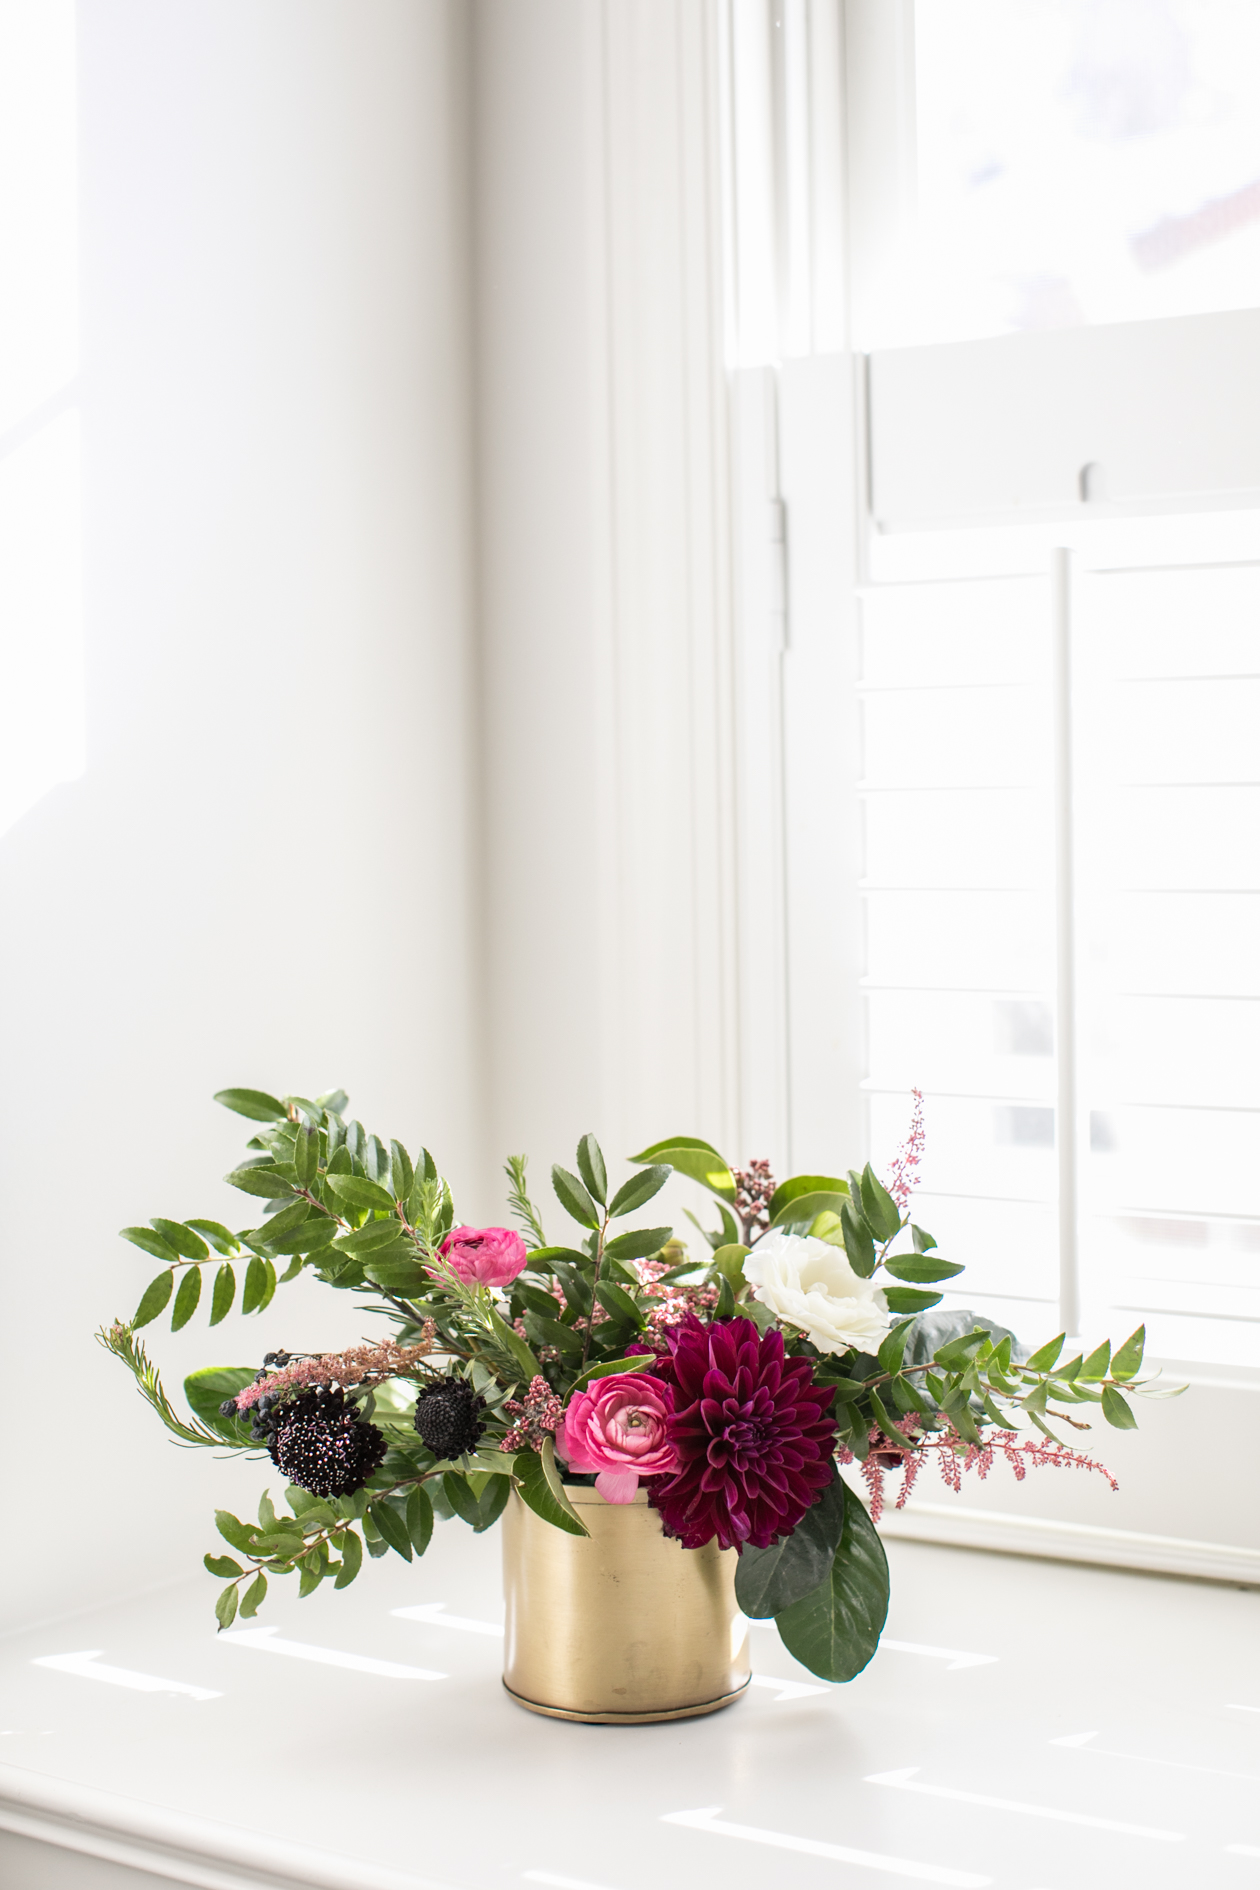 Student Floral Work - Photo by  Kismet Visuals